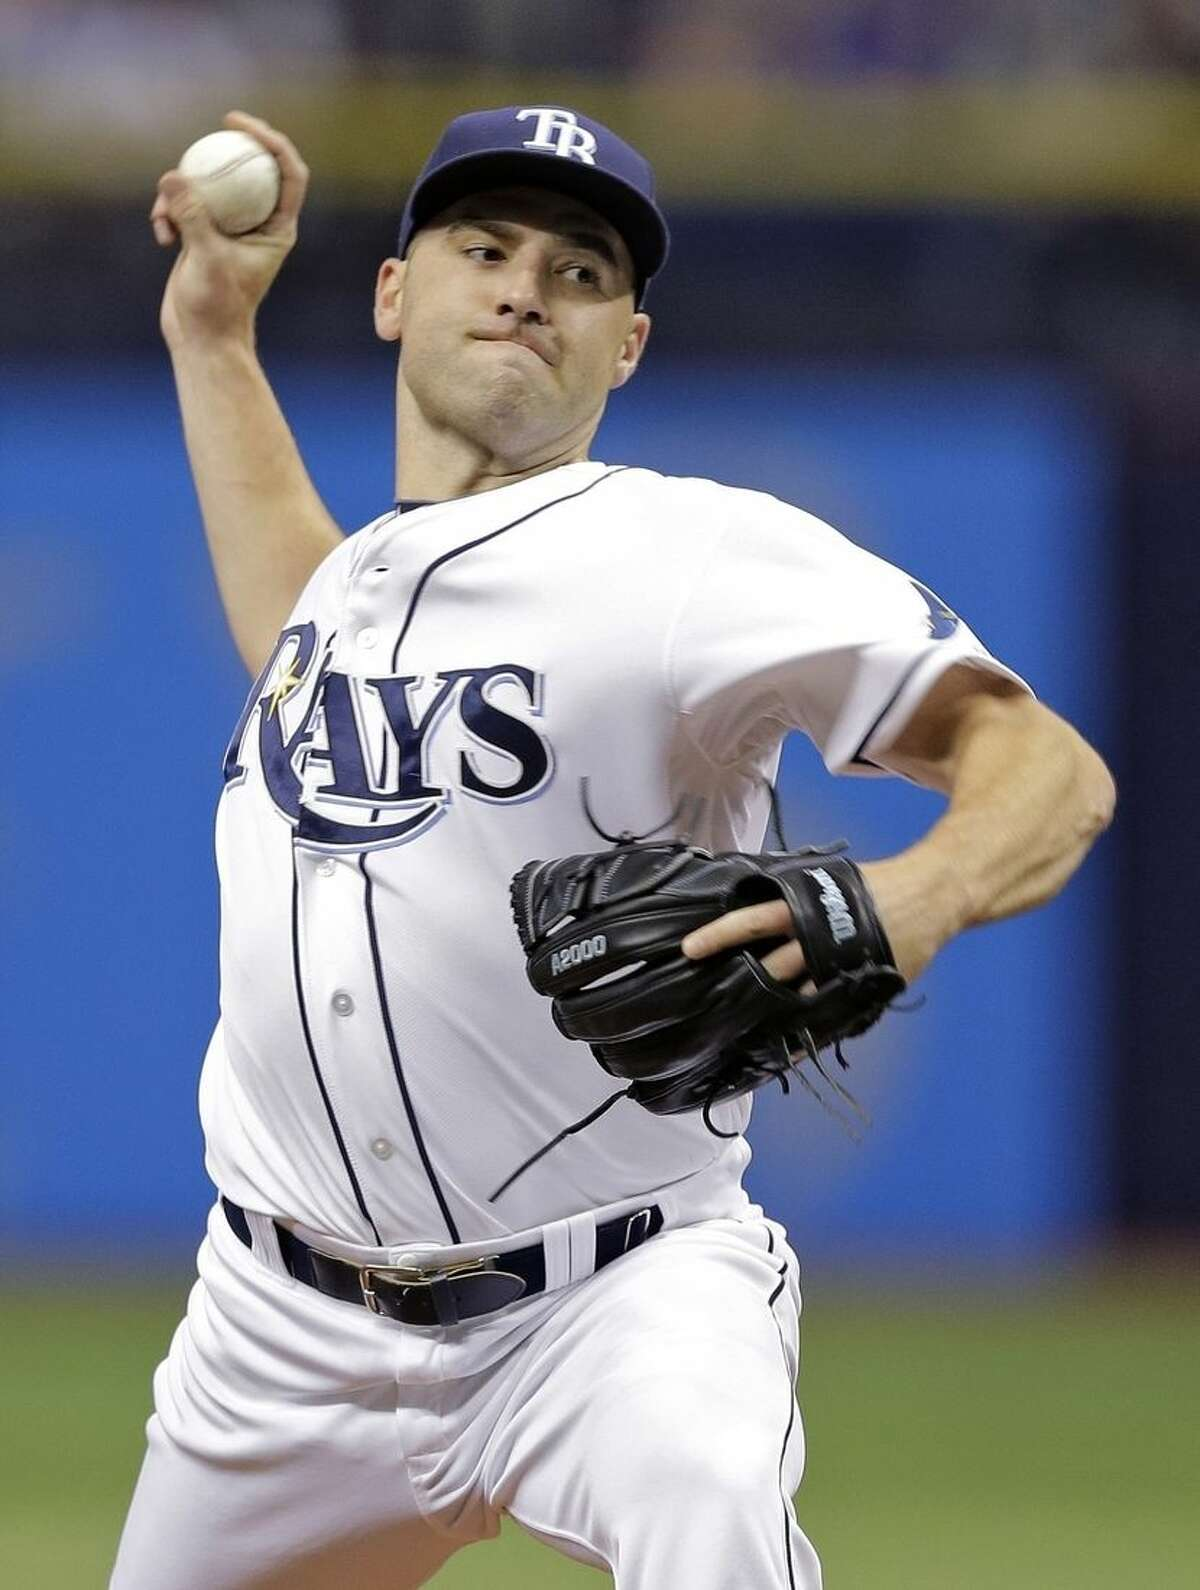 Tampa Bay Rays starting pitcher Nathan Karns delivers to the New York Mets during the first inning of an interleague baseball game Saturday, Aug. 8, 2015, in St. Petersburg, Fla. (AP Photo/Chris O'Meara)